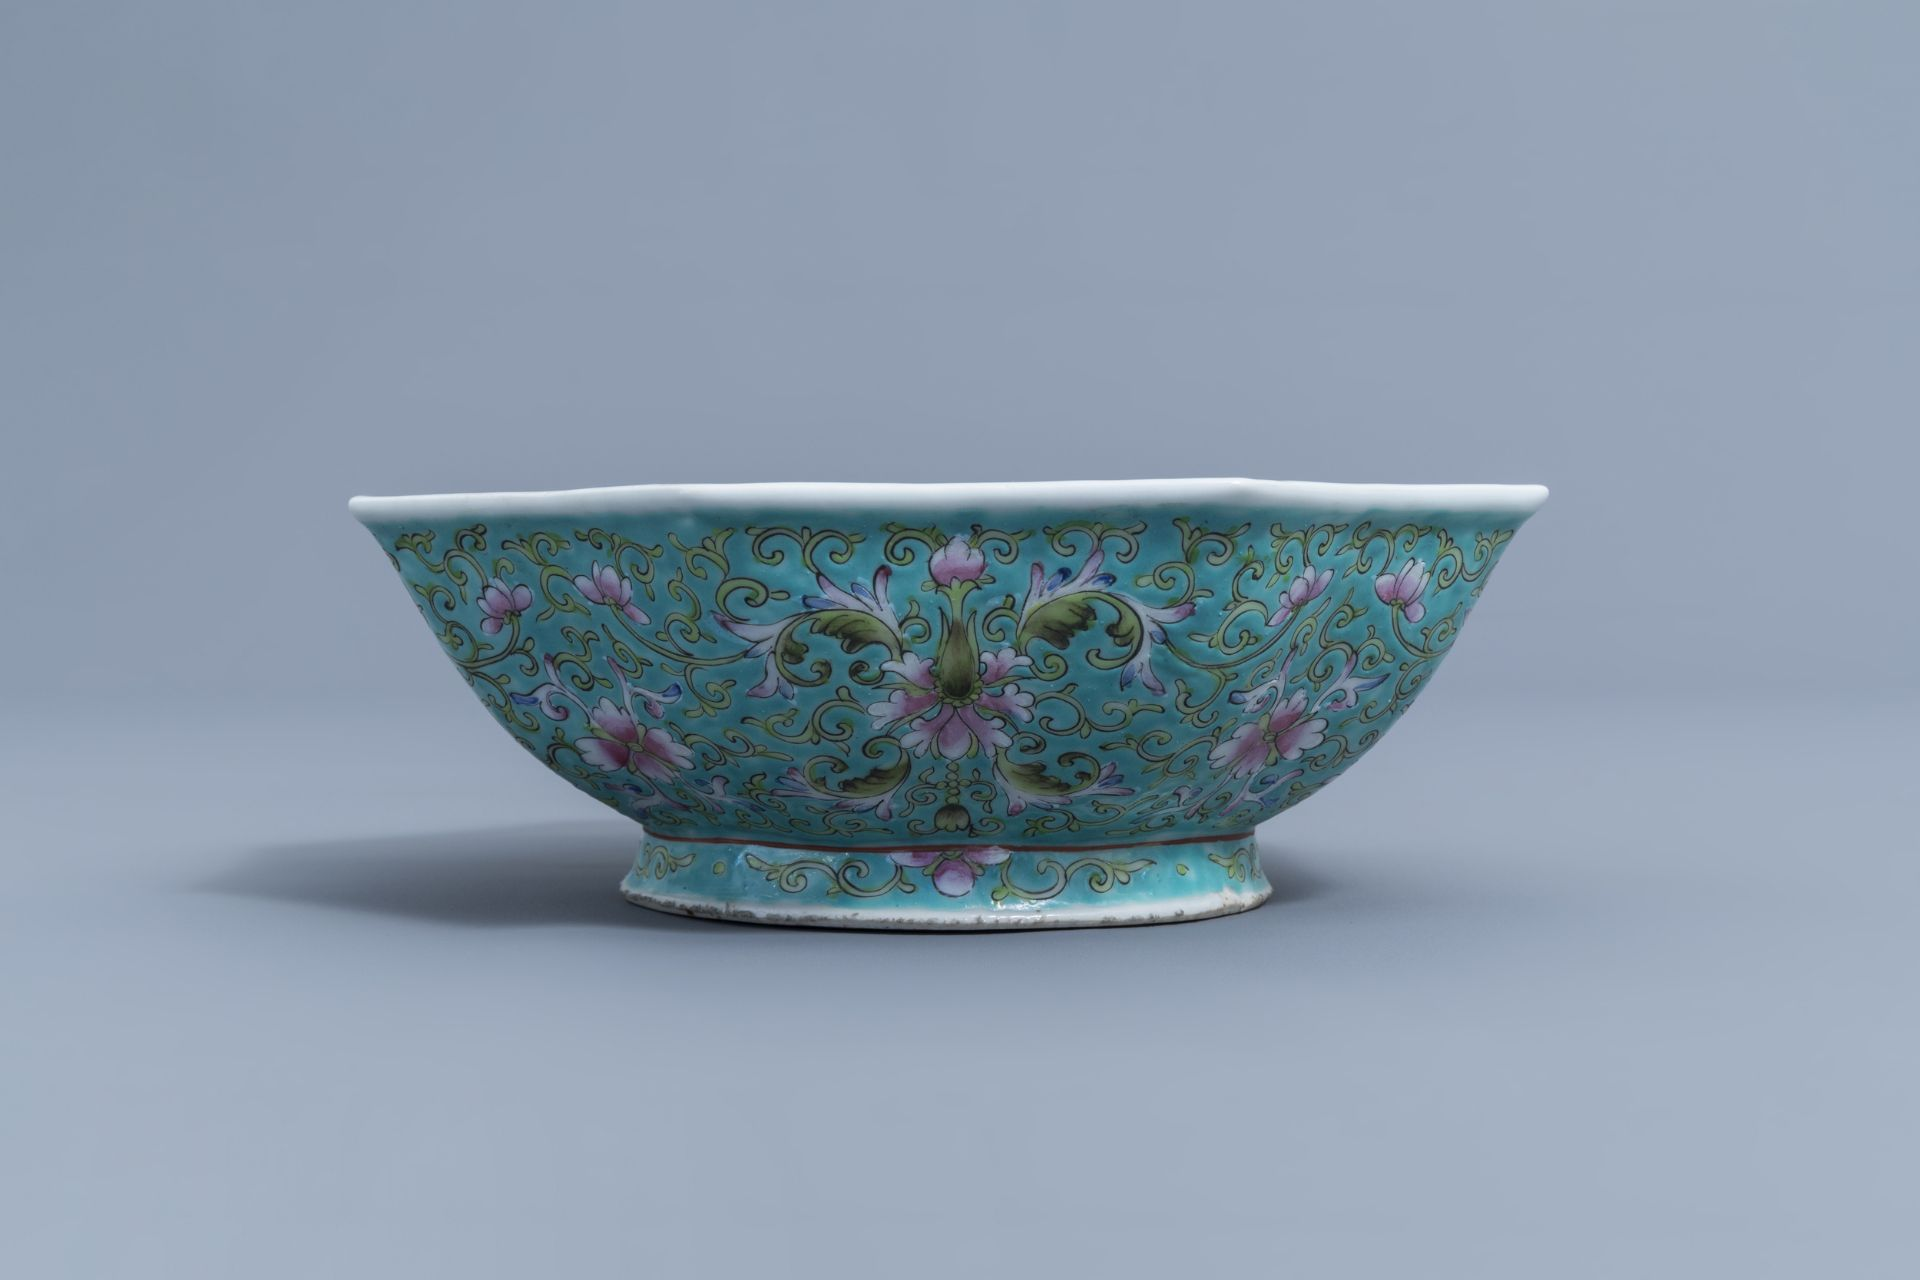 Two Chinese famille rose jardinires and a bowl with floral design, 20th C. - Image 10 of 15